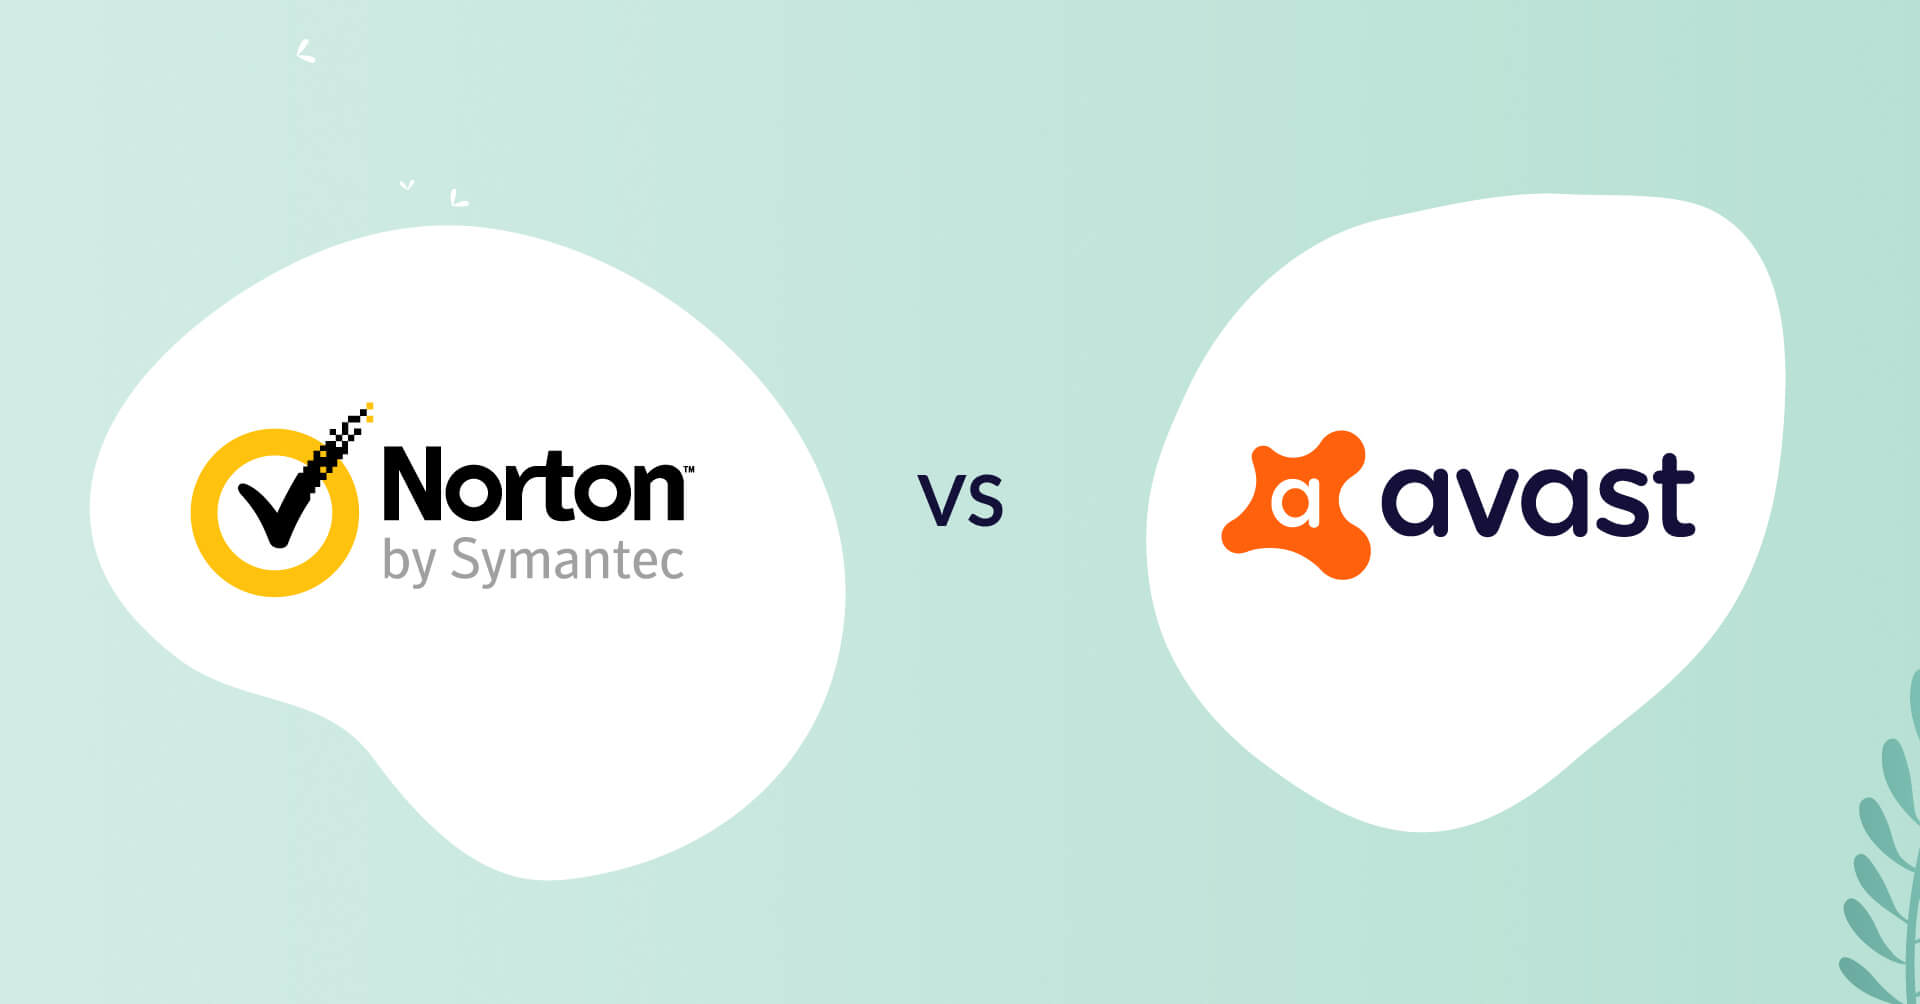 webroot logo vs avast logo antivirus comparison header for how to choose article